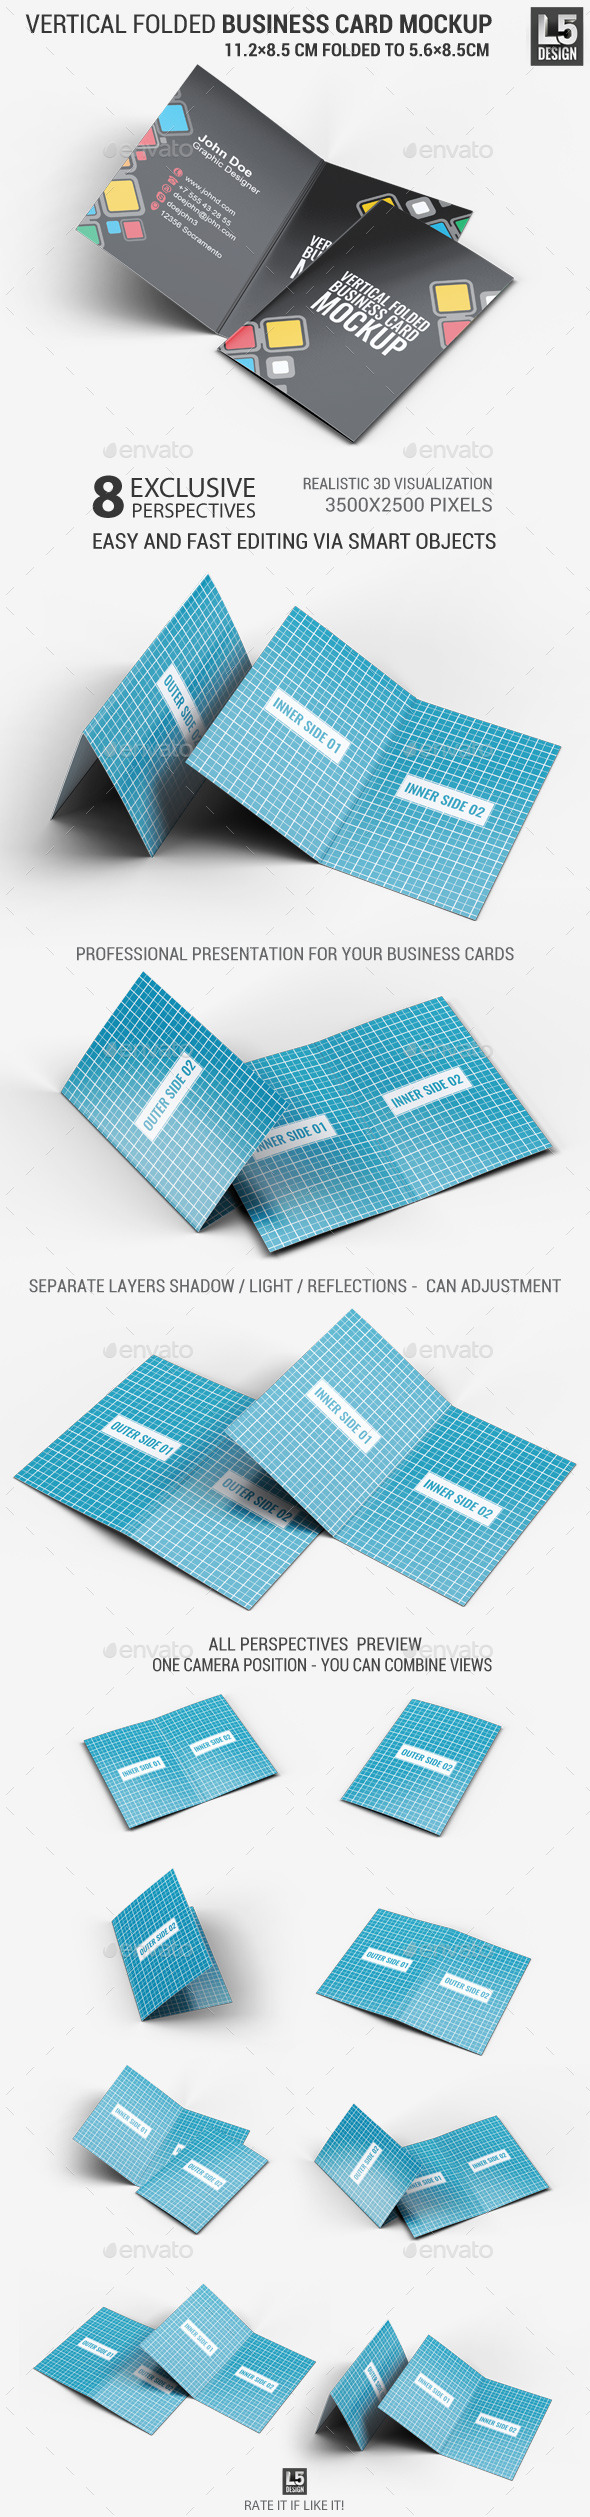 Vertical Folded Business Card Mock-Up by L5Design | GraphicRiver